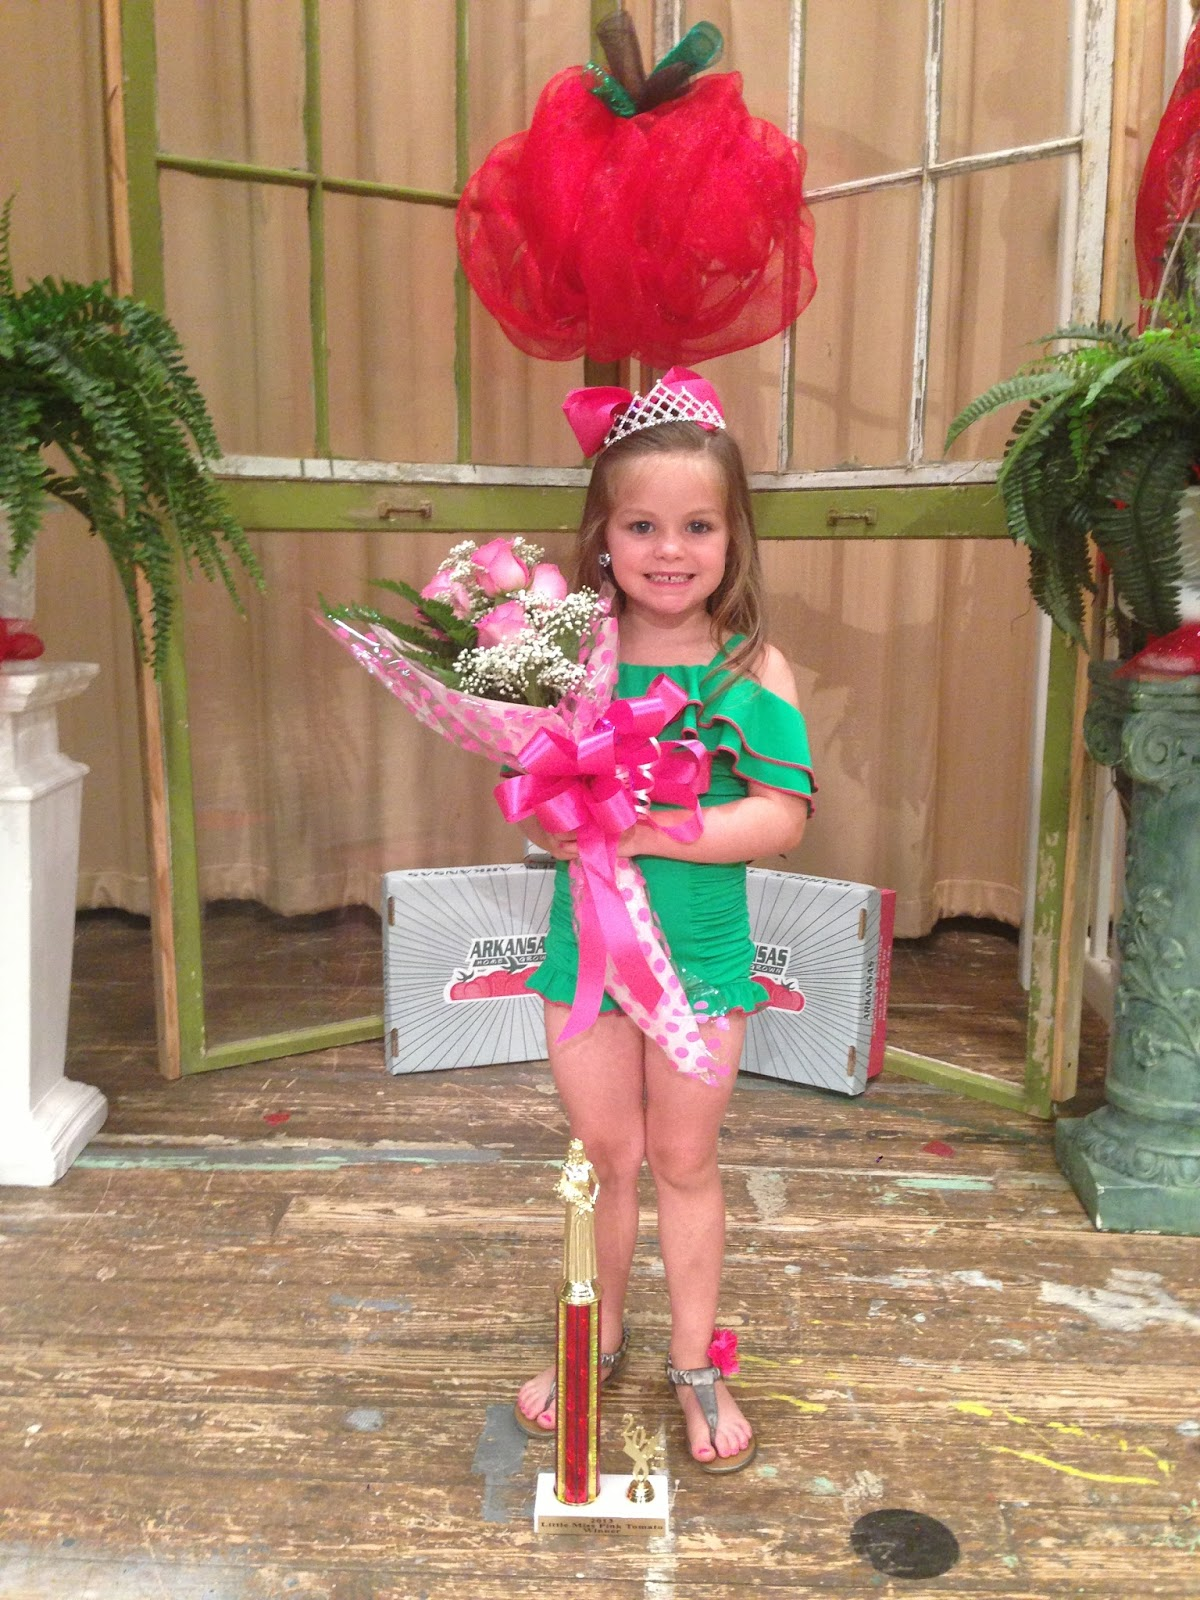 Saline River Chronicle News: Alli Cathy Crowned Little Miss Pink